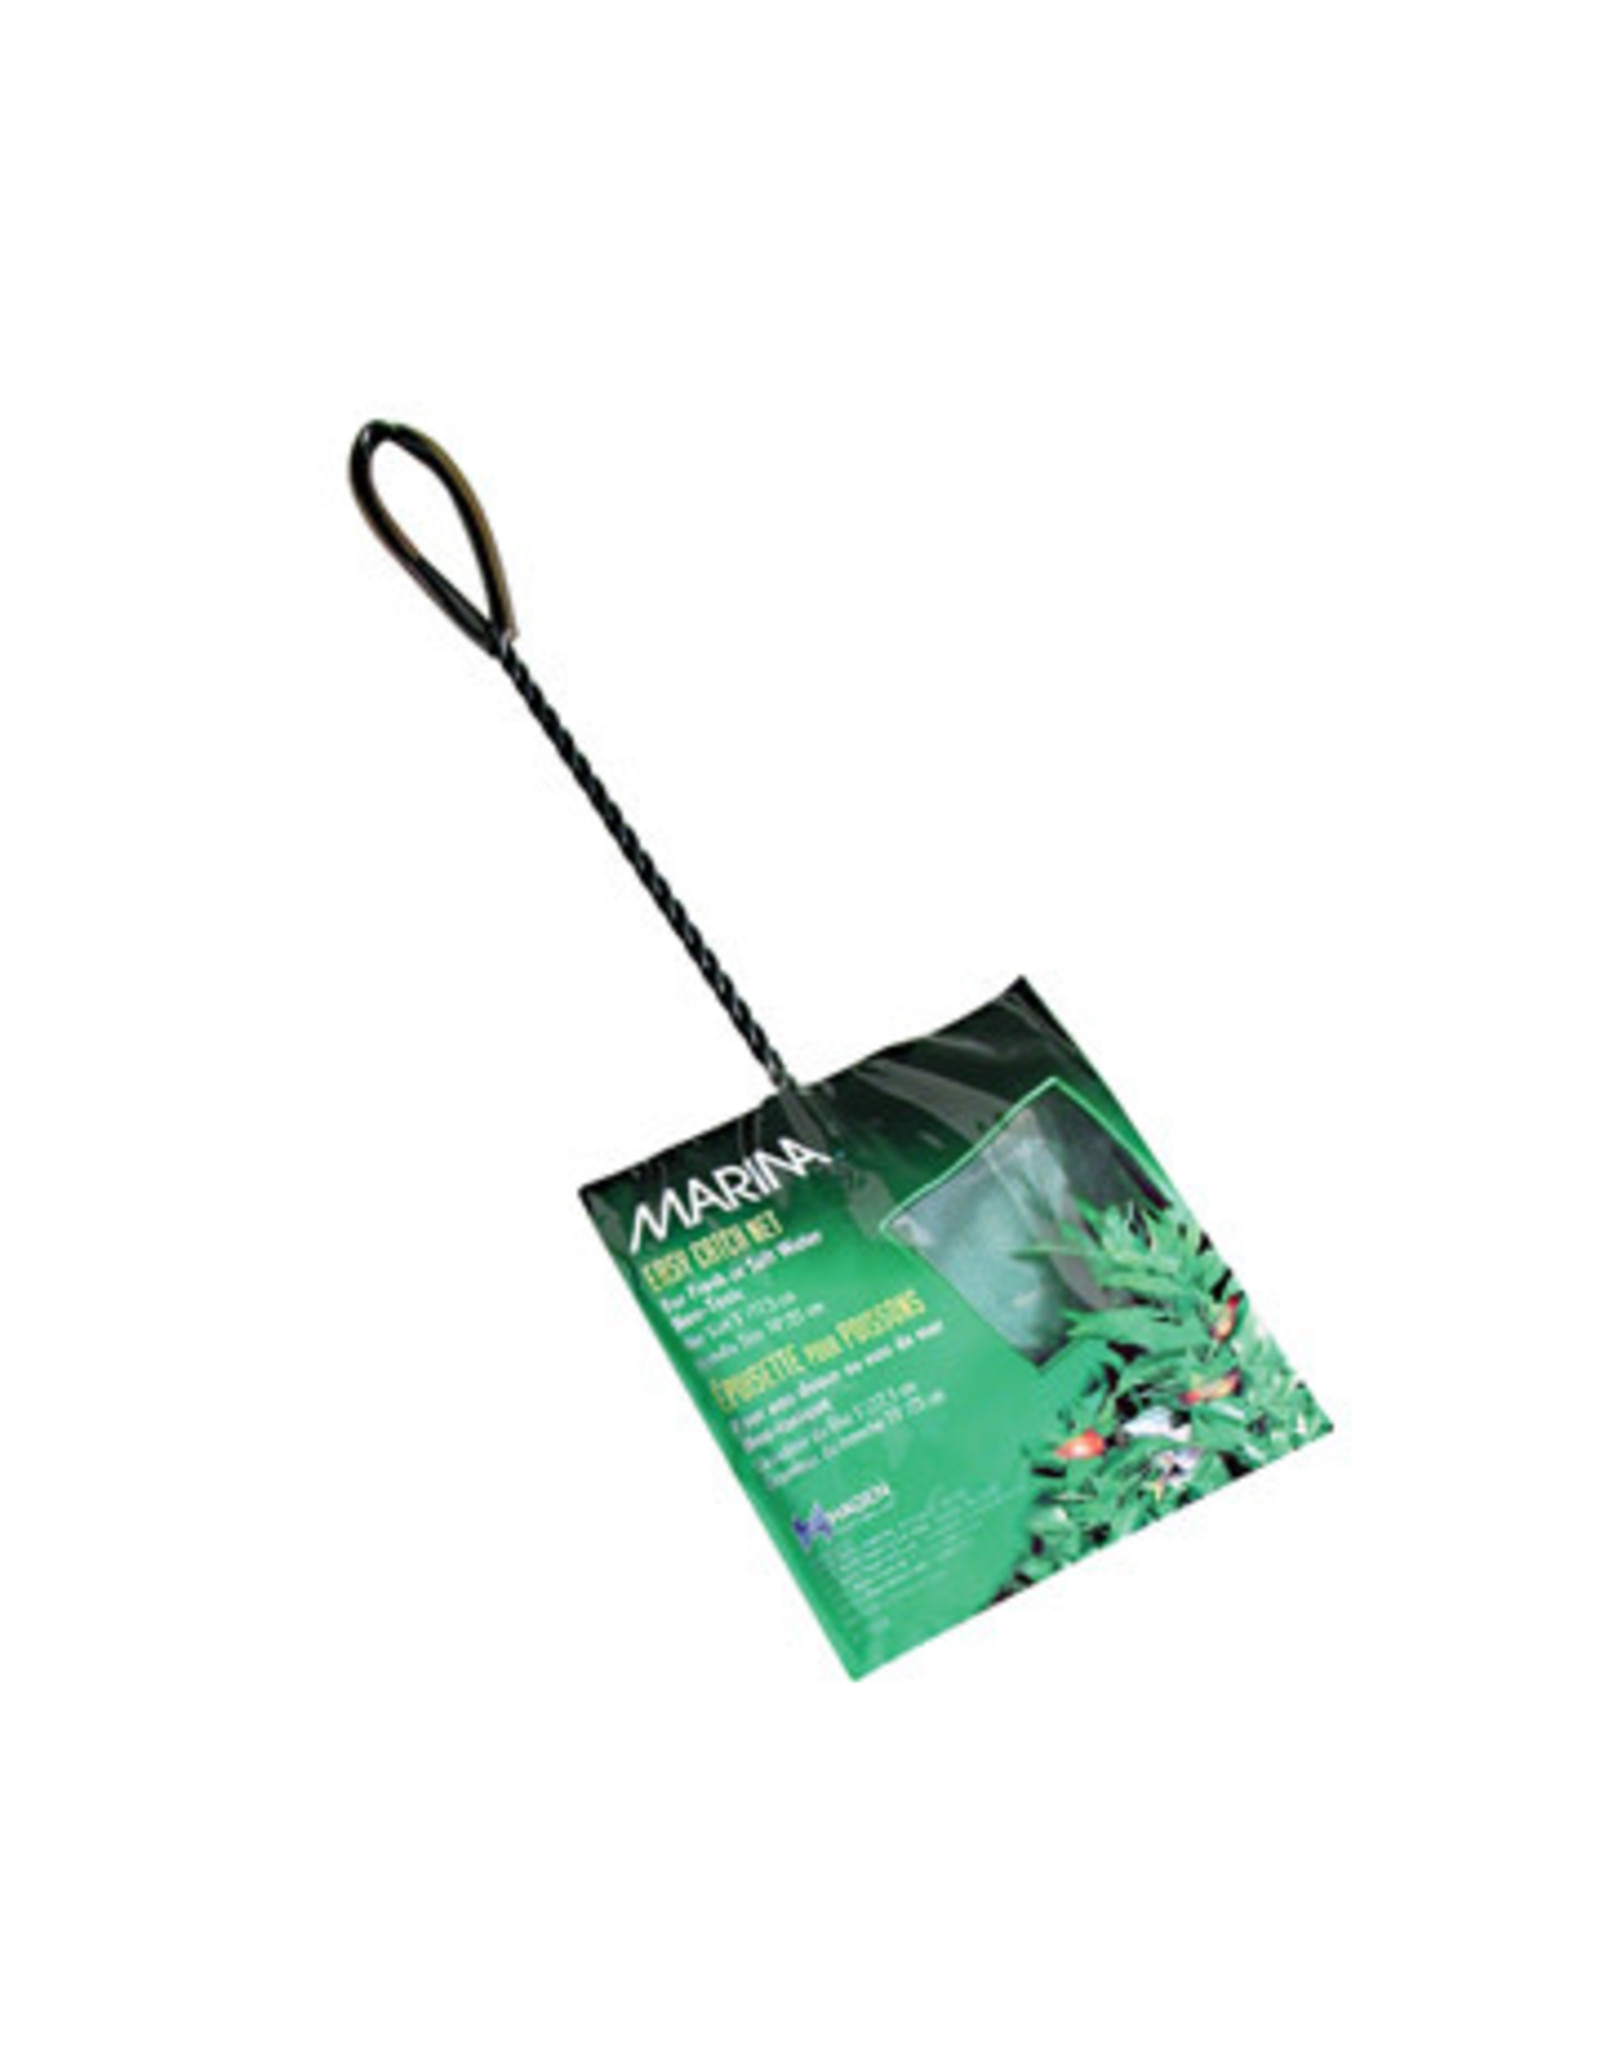 Marina Marina Easy Catch Net, 12.5 cm